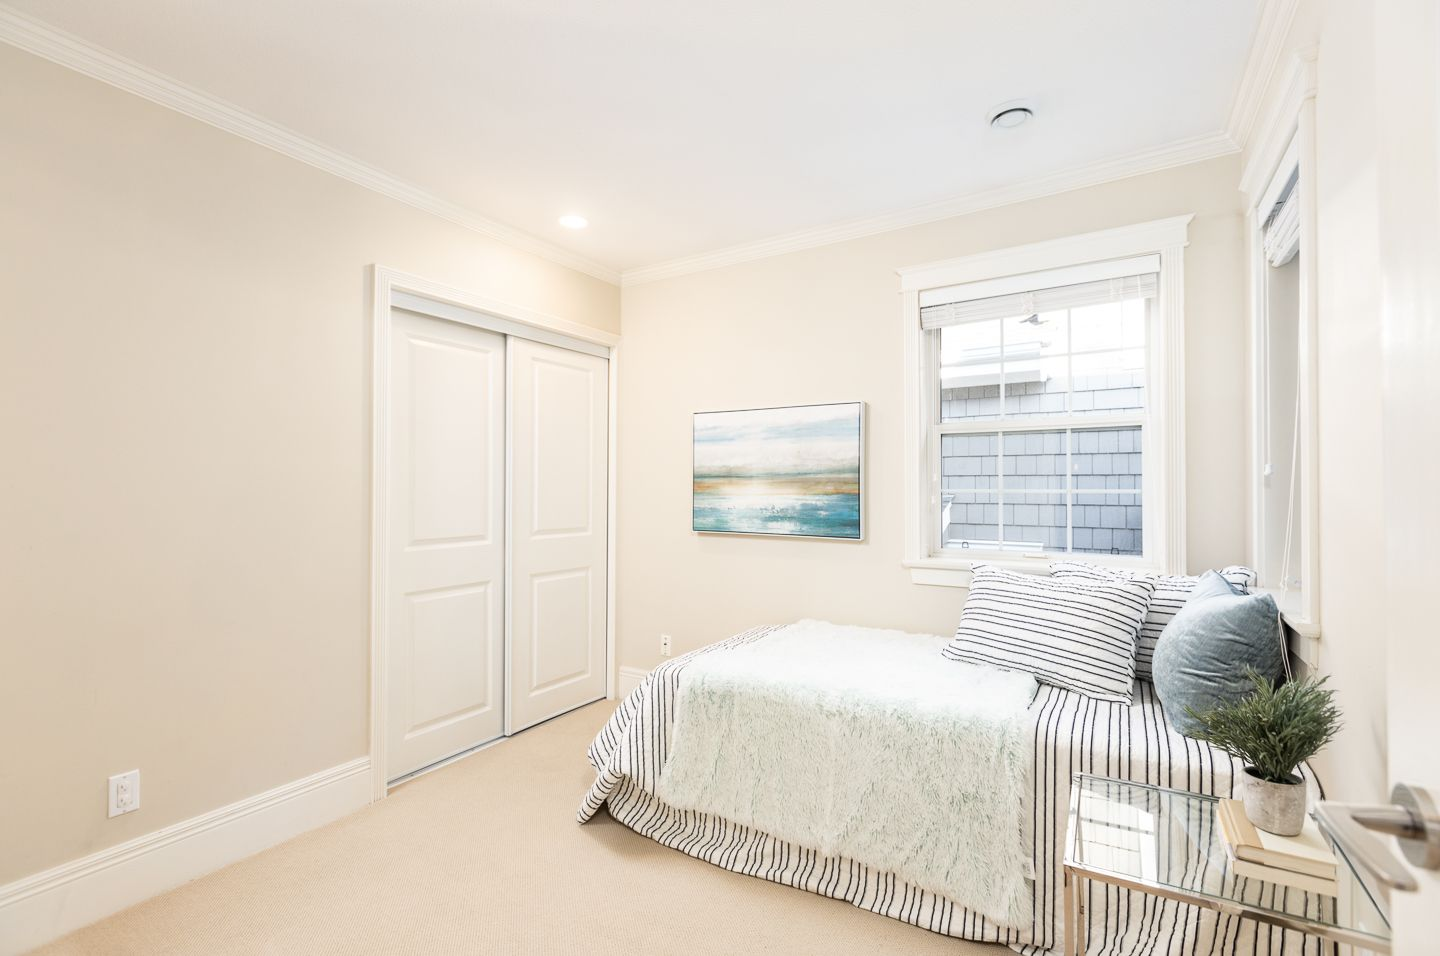 Photo 16: Photos: 2267 WEST 13TH AV in VANCOUVER: Kitsilano 1/2 Duplex for sale (Vancouver West)  : MLS®# R2407976